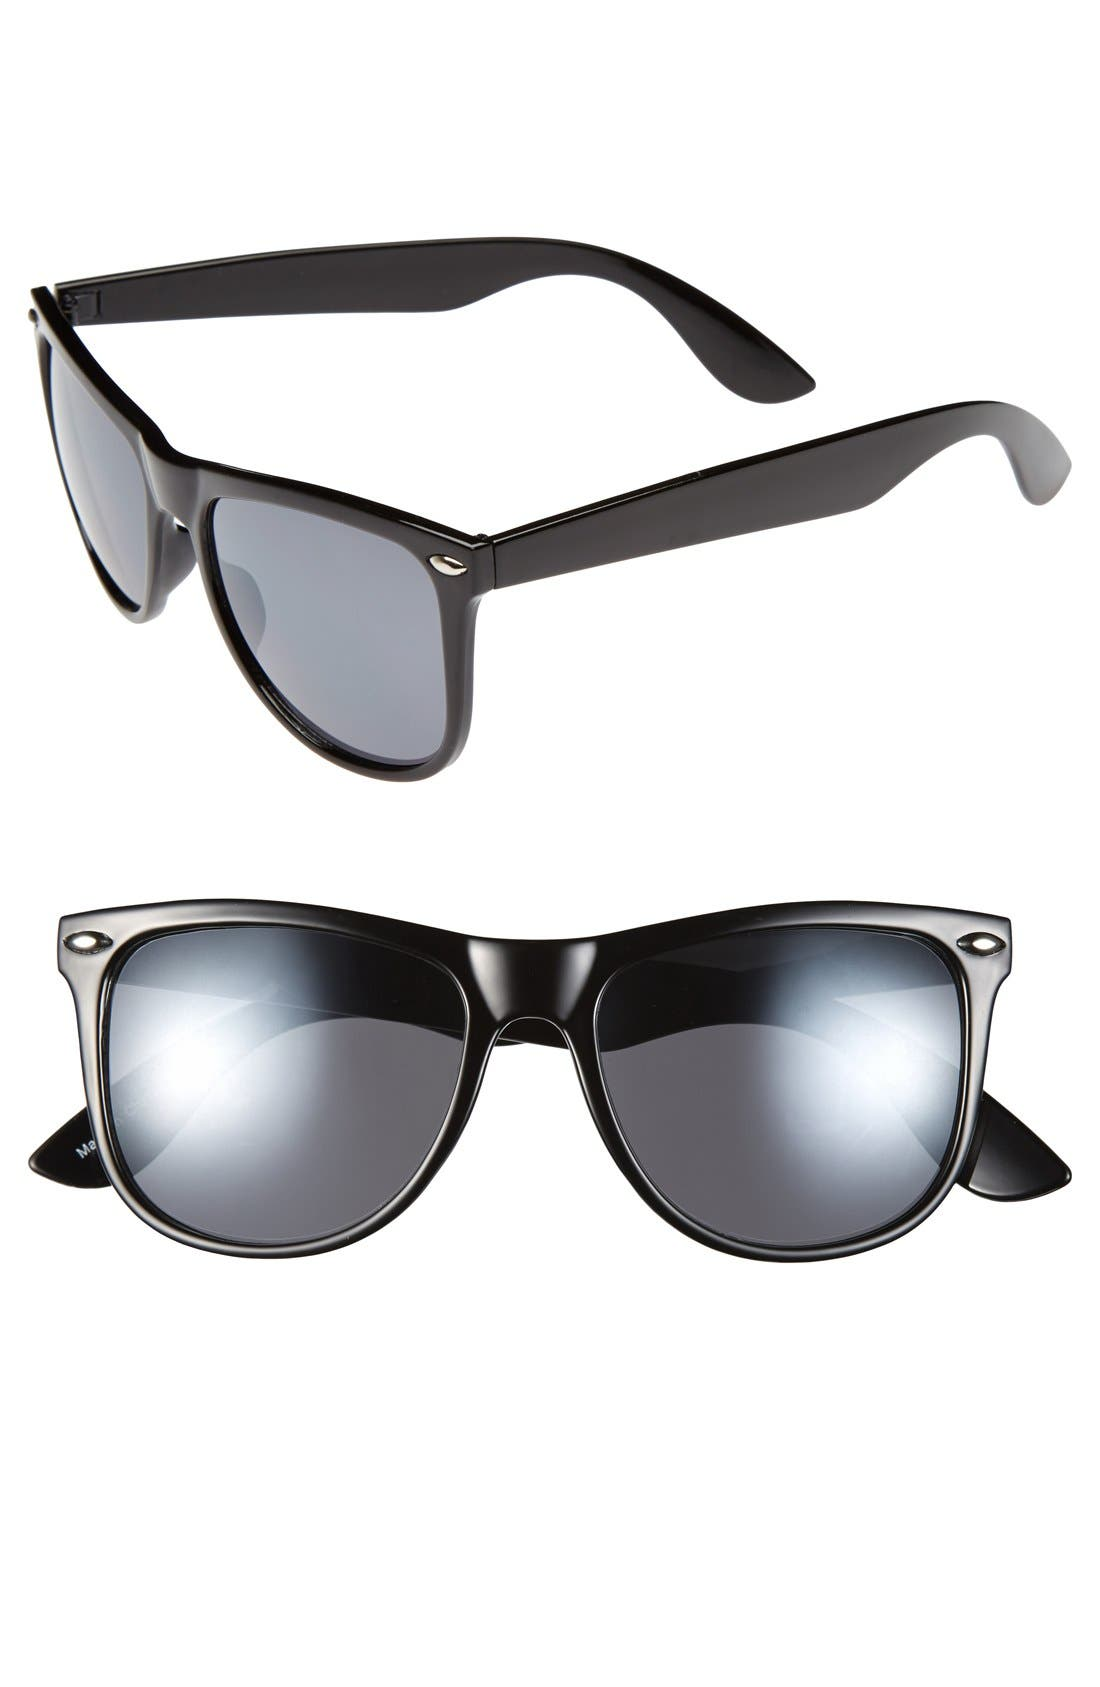 Alternate Image 1 Selected - Fantas Eyes 'Gelato' 53mm Retro Sunglasses (Juniors)